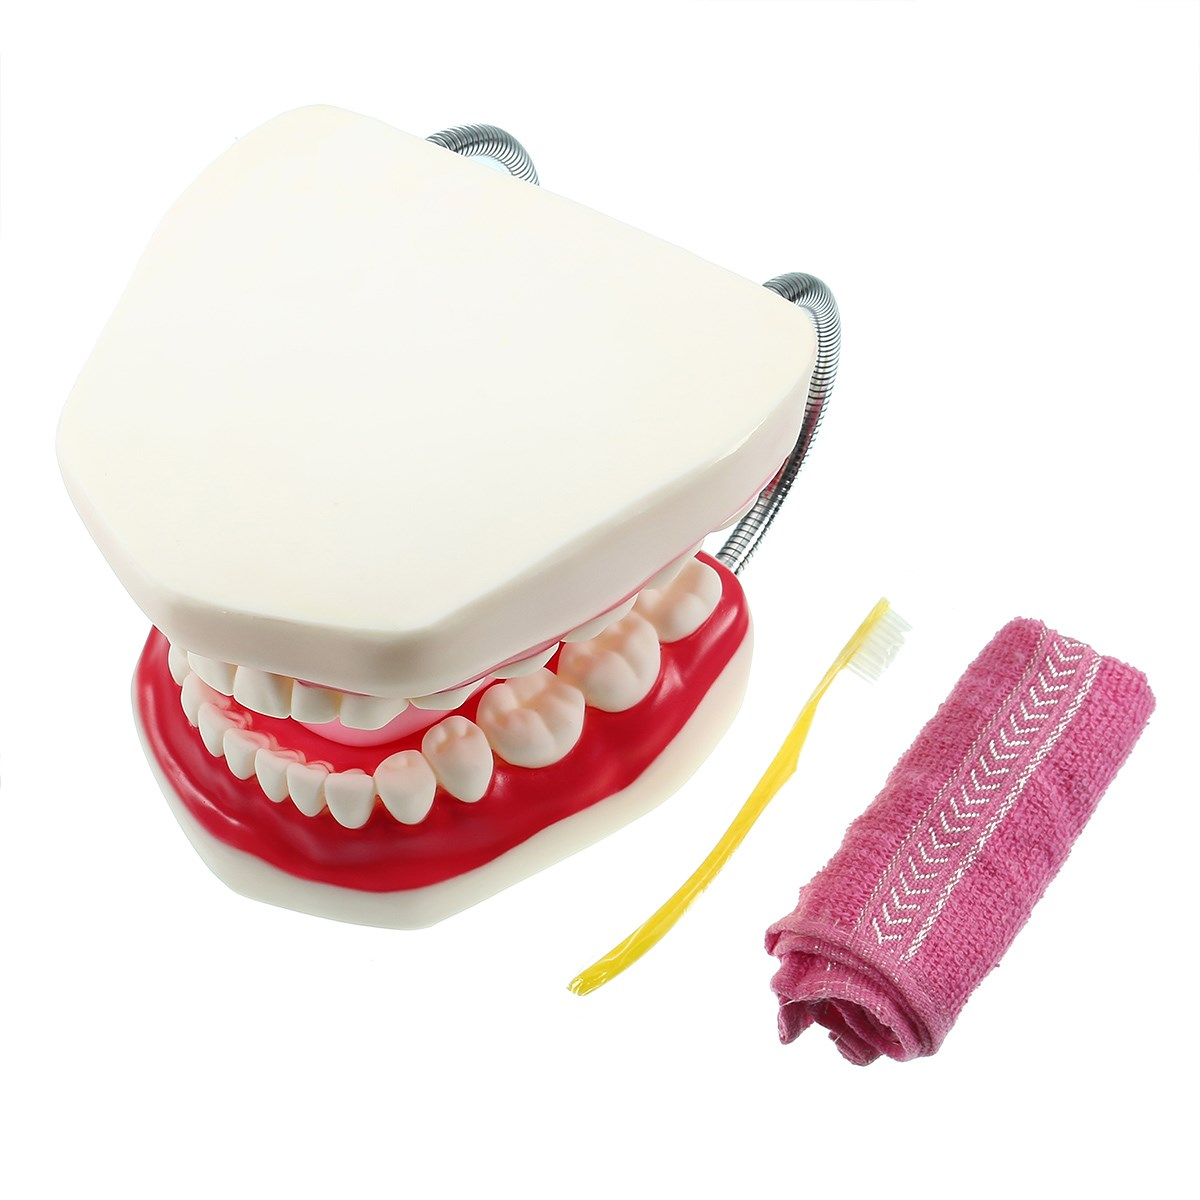 Large Dental Adult Teeth Model 6 Times Oral Models Tooth With Tongue For Kindergarten Child Early Teaching Study Health Care<br>